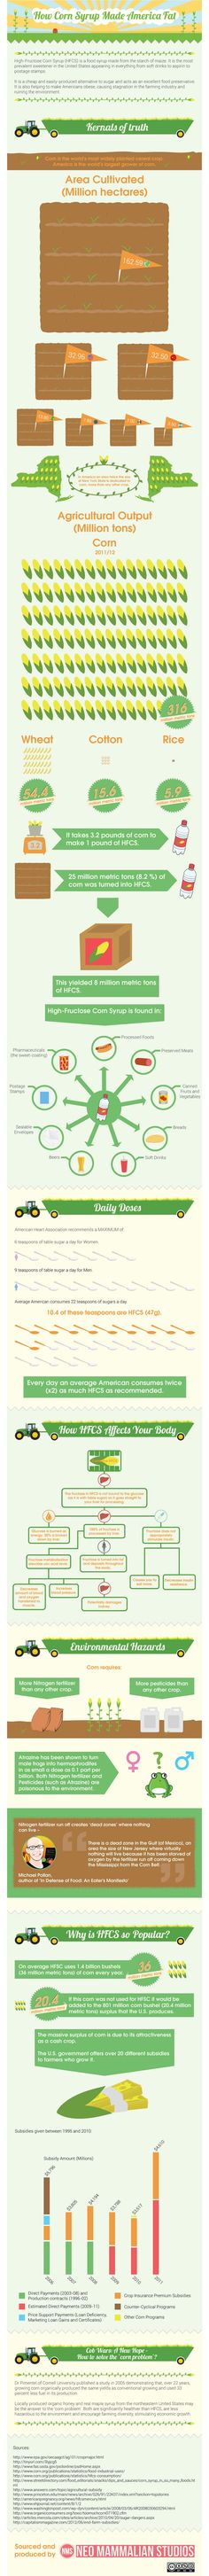 How High-Fructose Corn Syrup Is Making America Fat (Infographic)